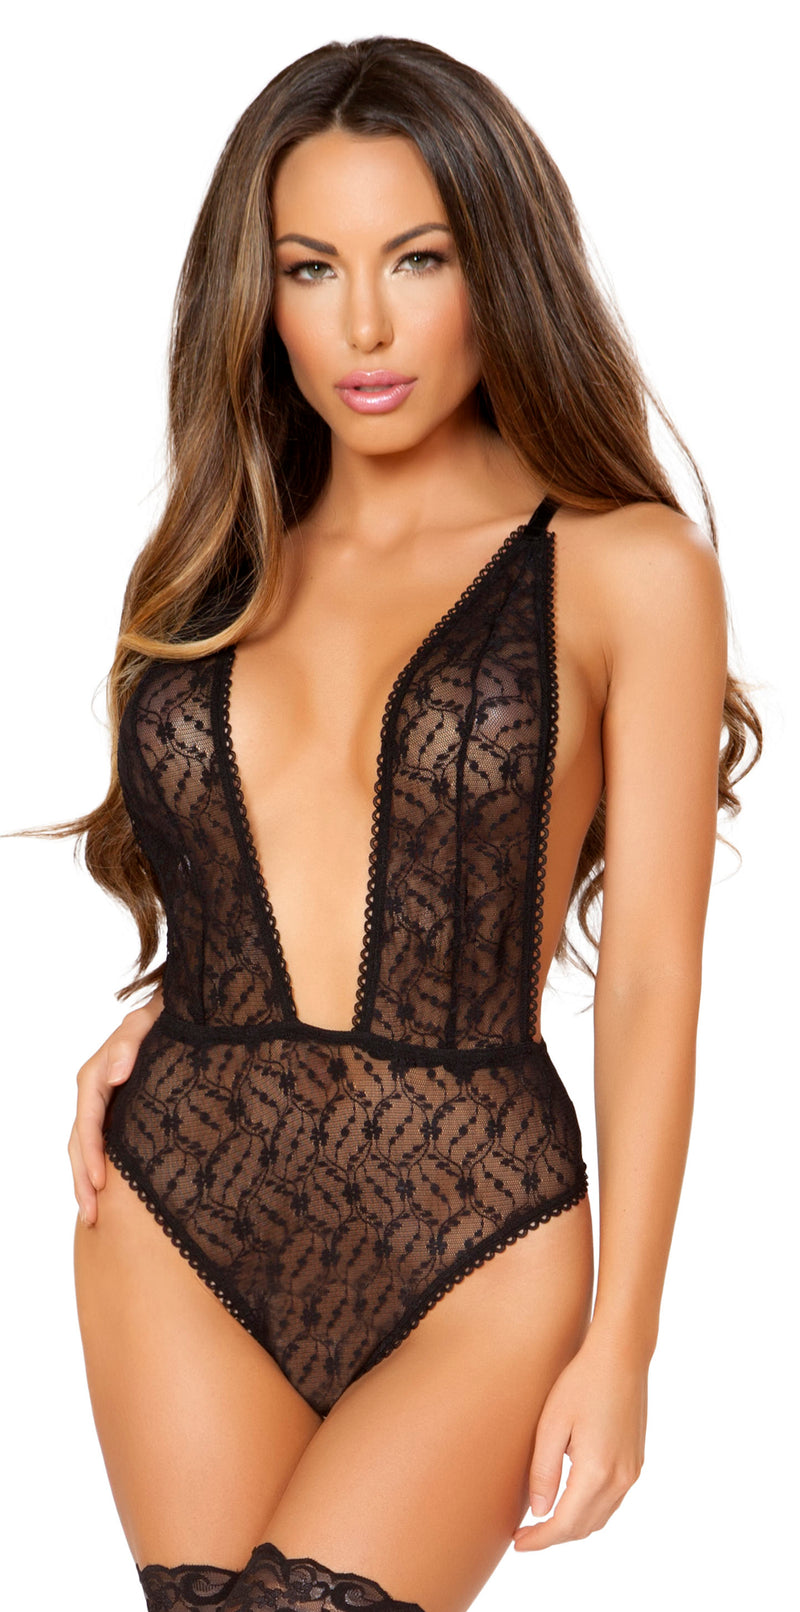 RM-LI168 Black low cut sheer teddy main